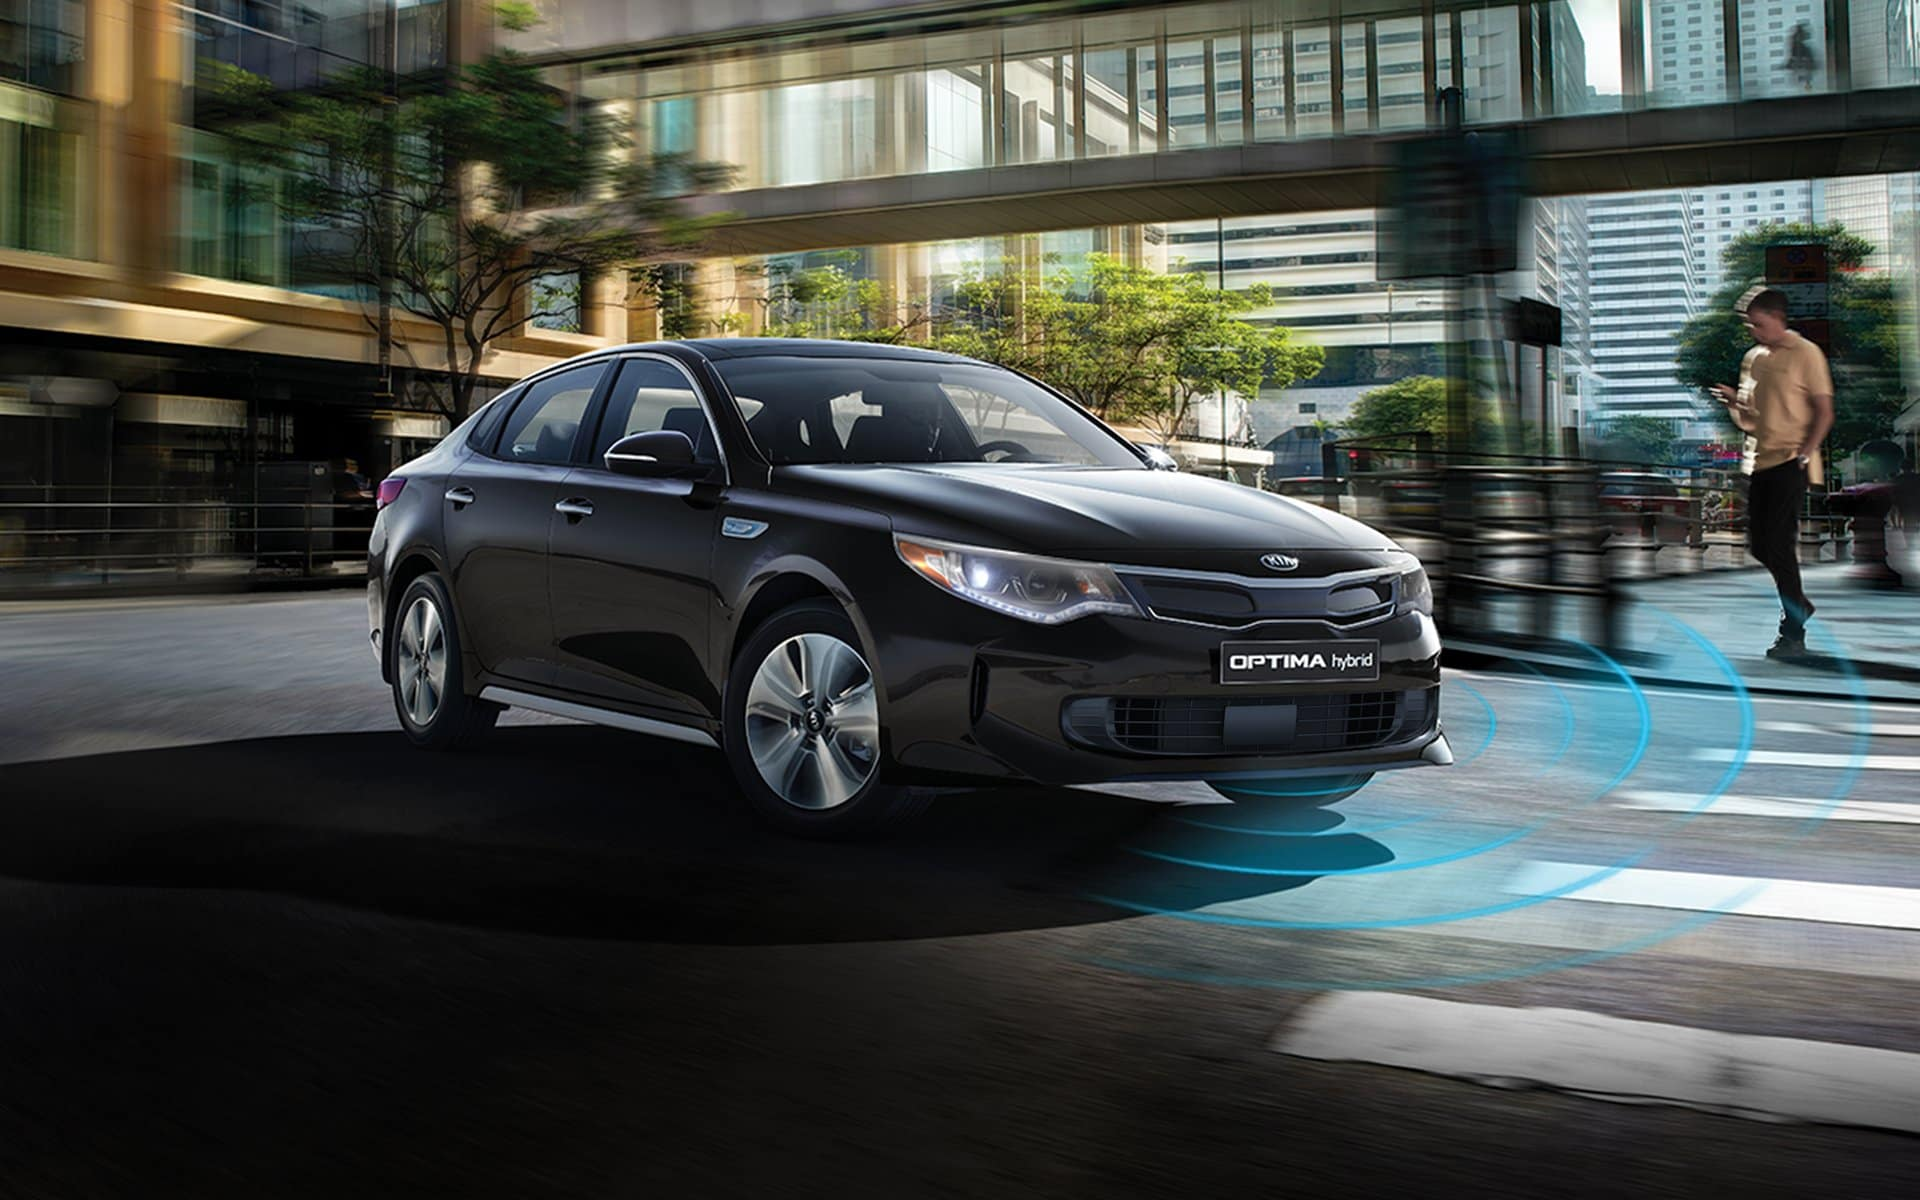 Background Optima Hybrid 2017 Technology Aeb-kia-1920x-jpg